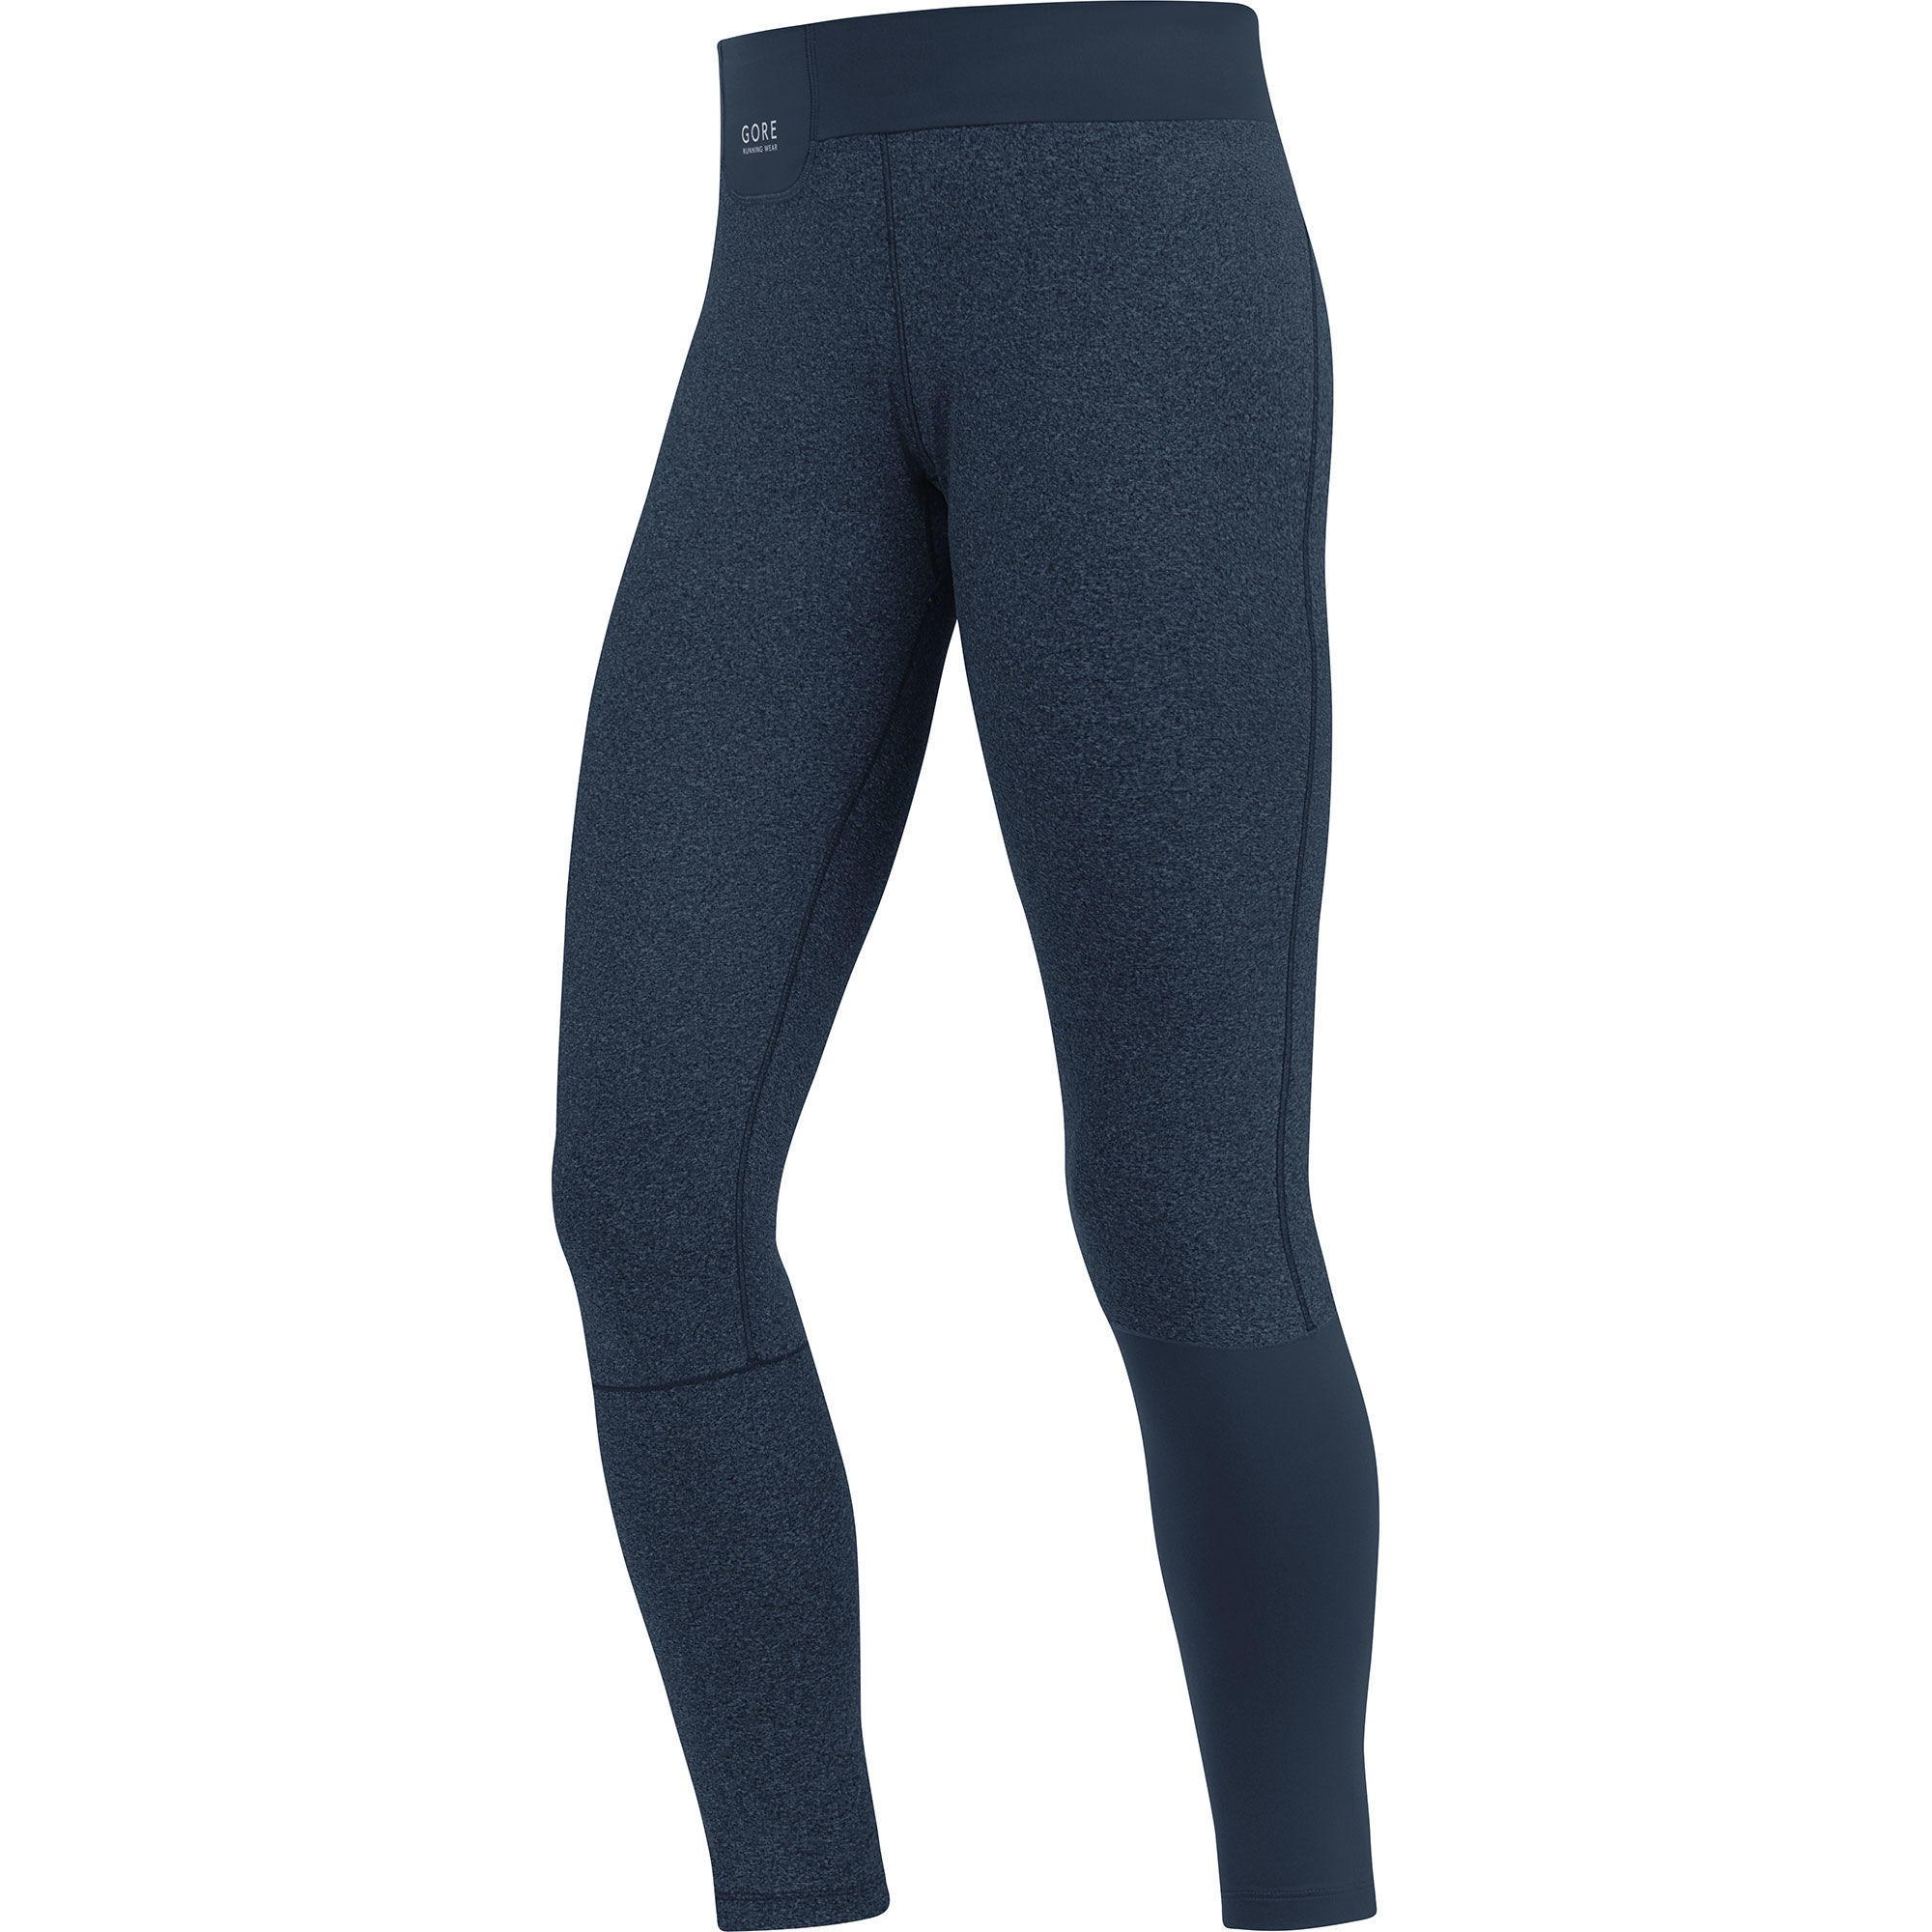 Gore Sunlight Lady Thermo Pants in Dunkelblau